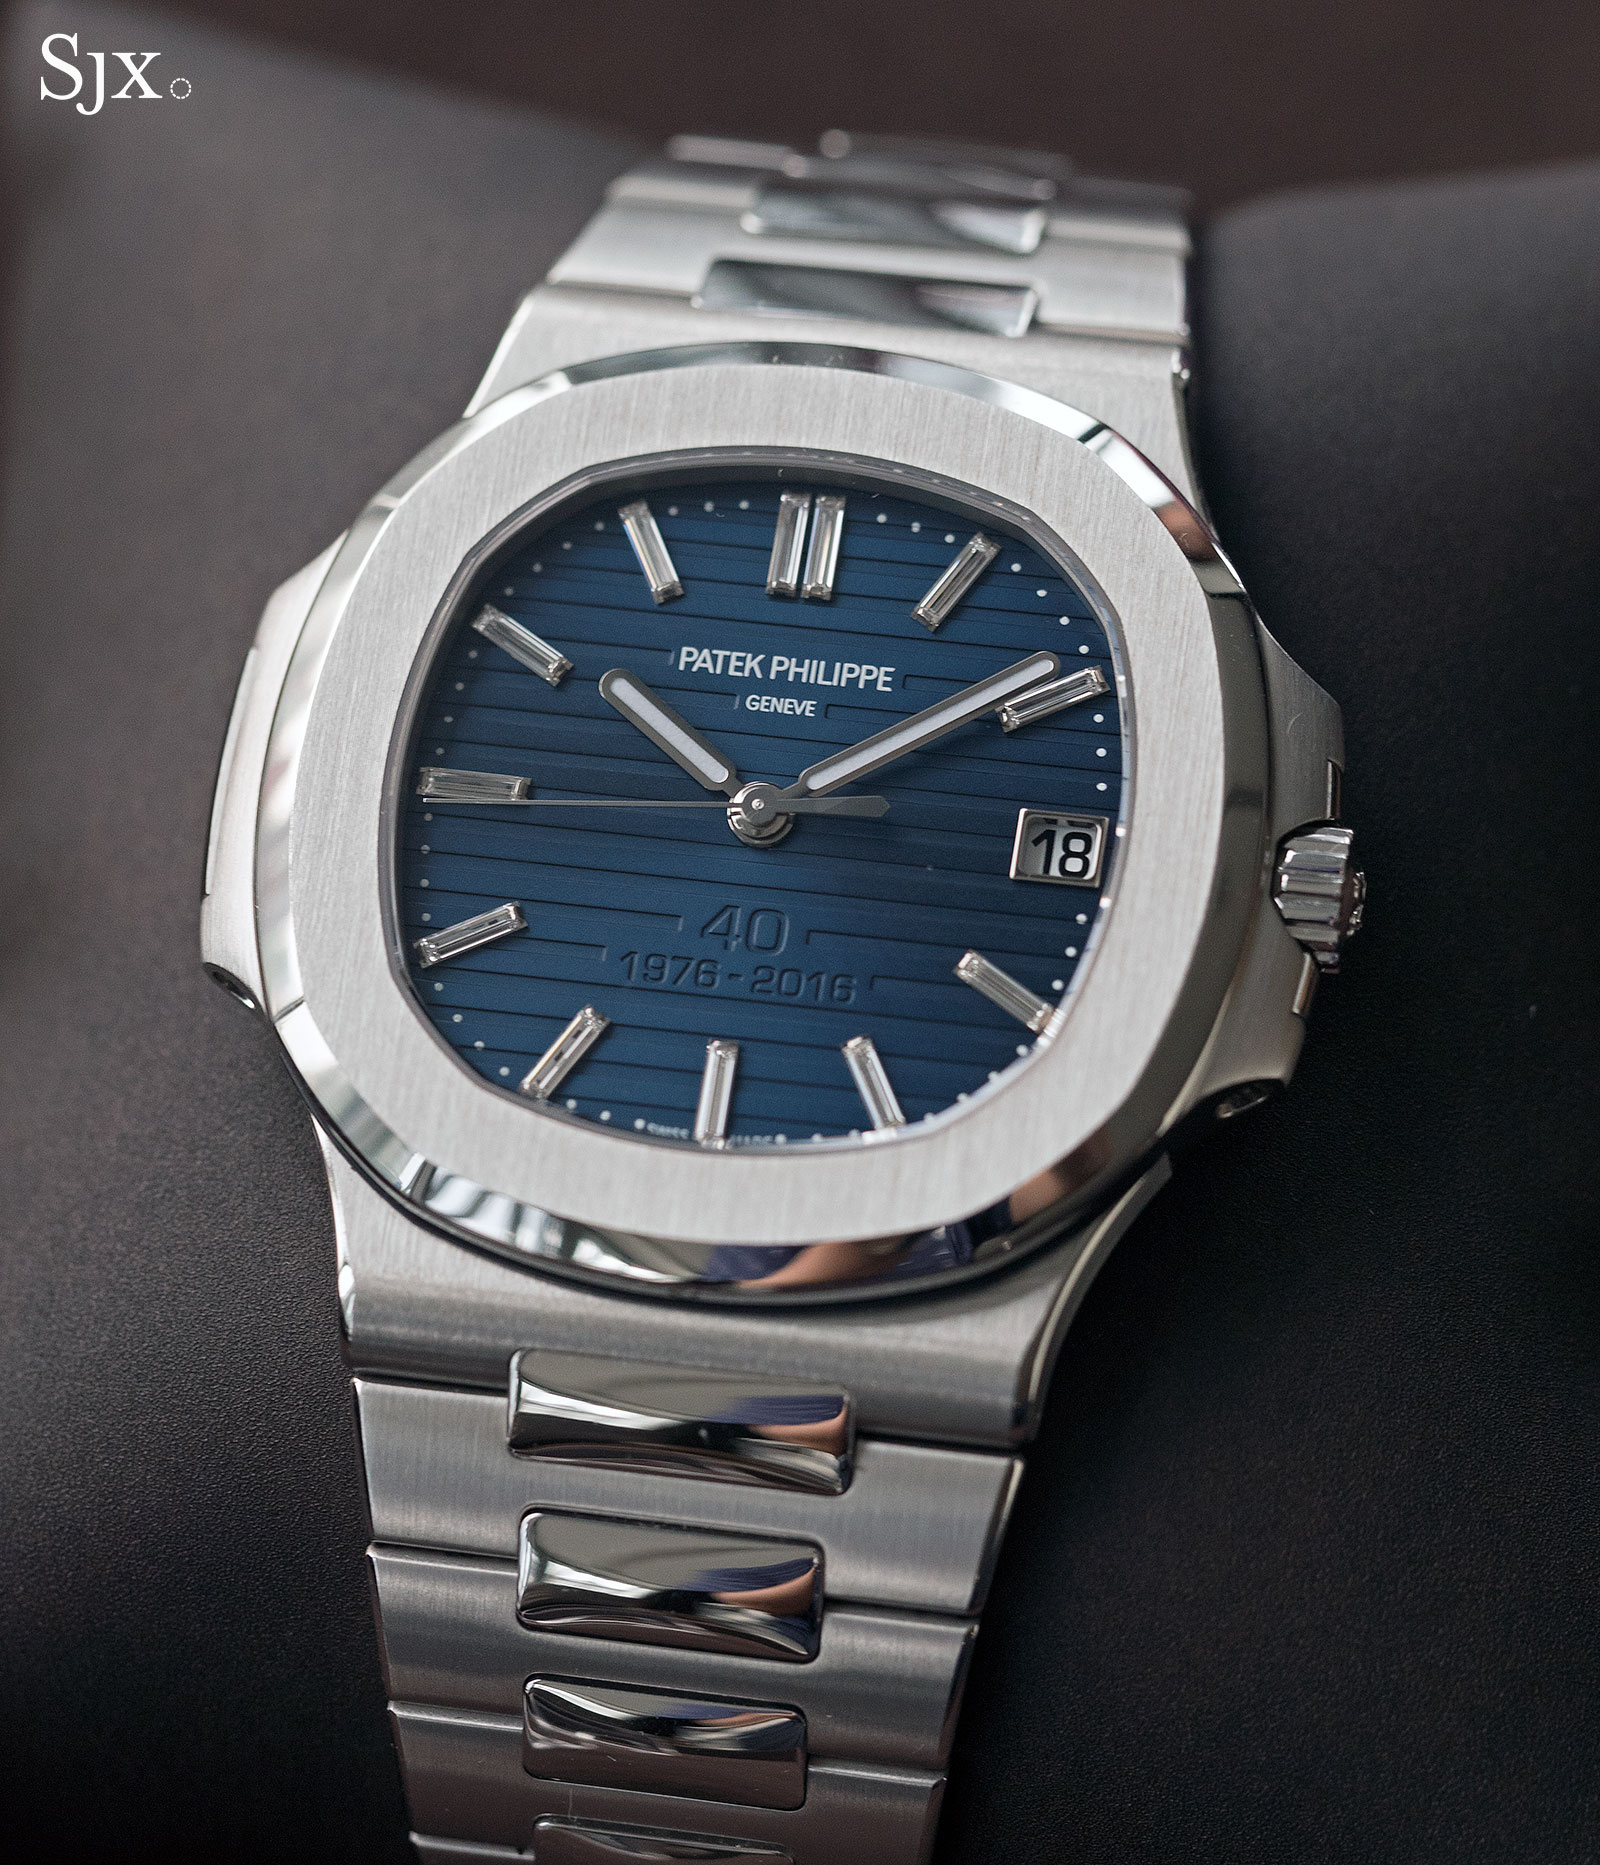 e3e91167b2b Up Close with the Patek Philippe Nautilus 40th Anniversary Limited ...